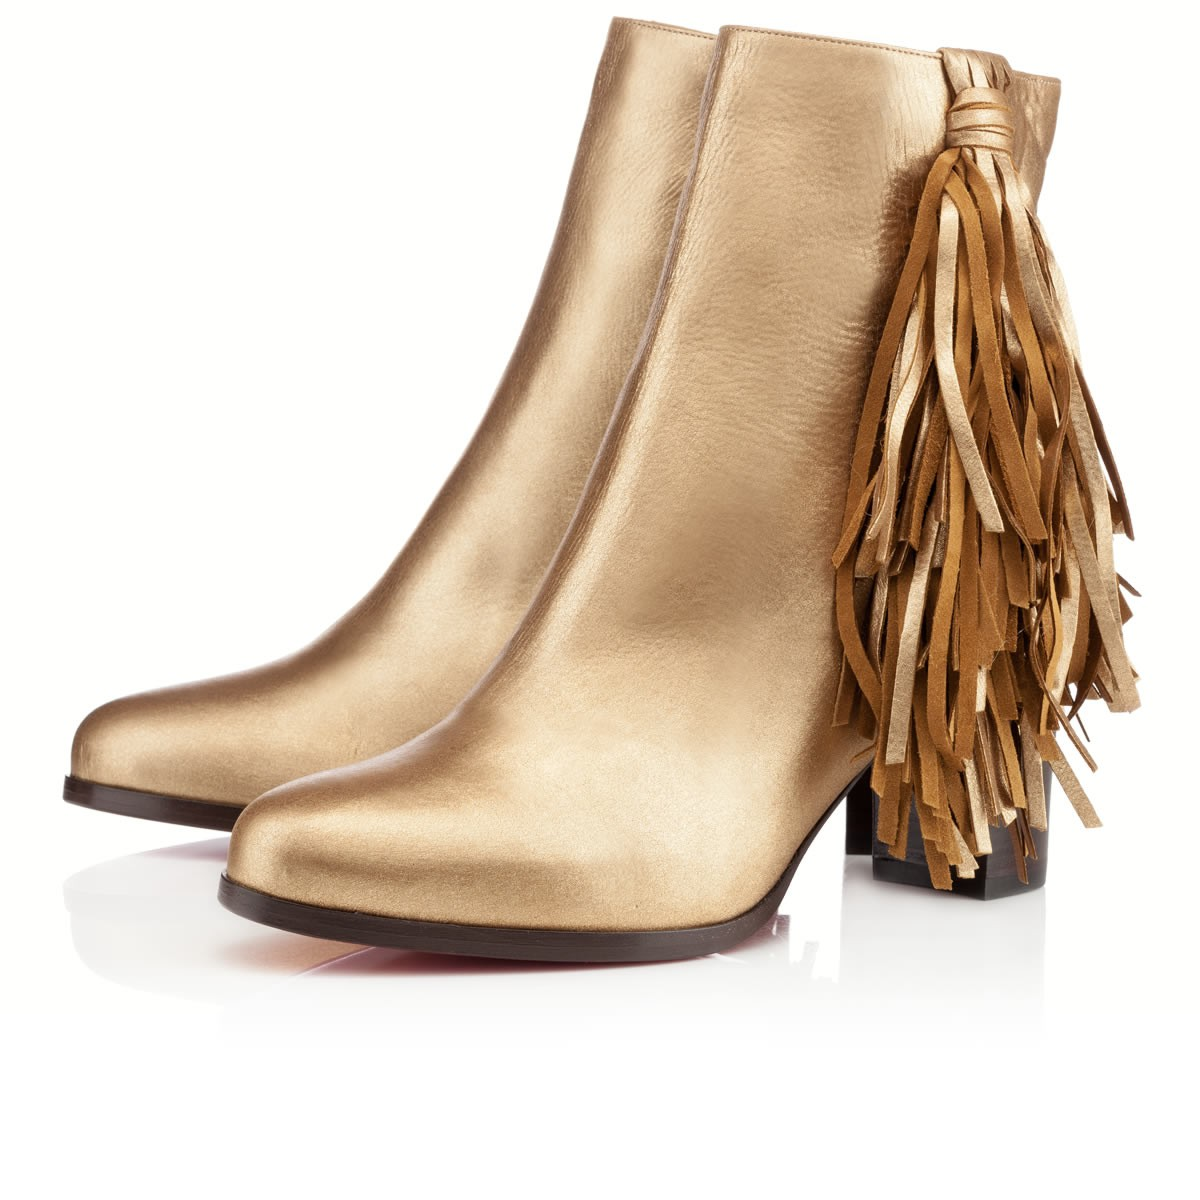 replica christian louboutin boots - christian louboutin Jimmynetta ankle boots Black leather tassel ...